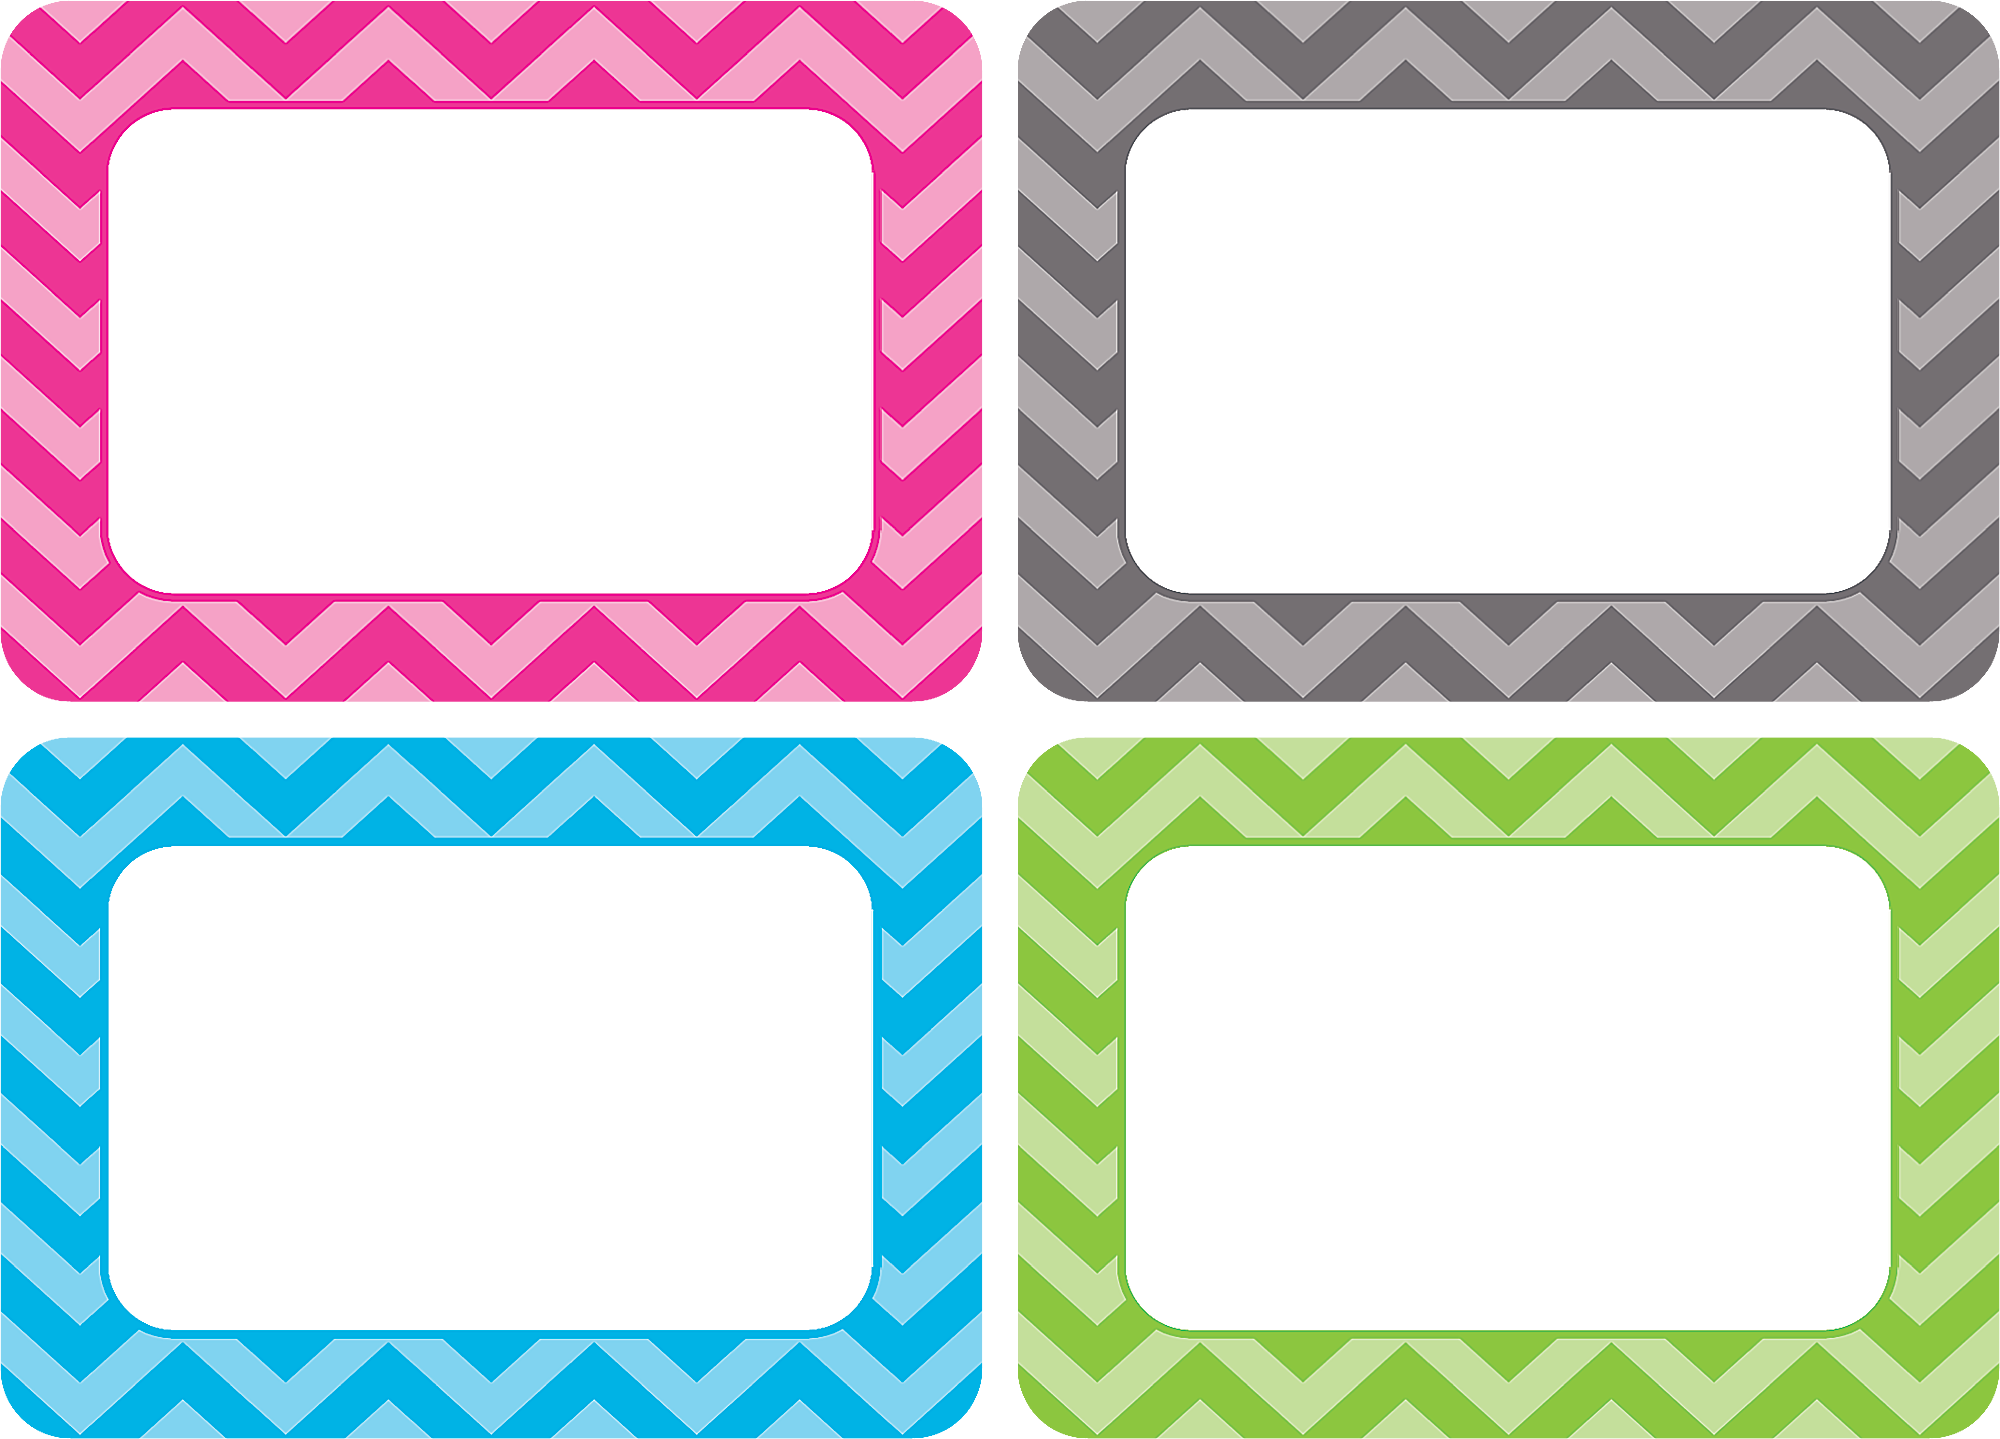 Labels: Chevron Name Tags/Labels - Multi-Pack - TCR5526